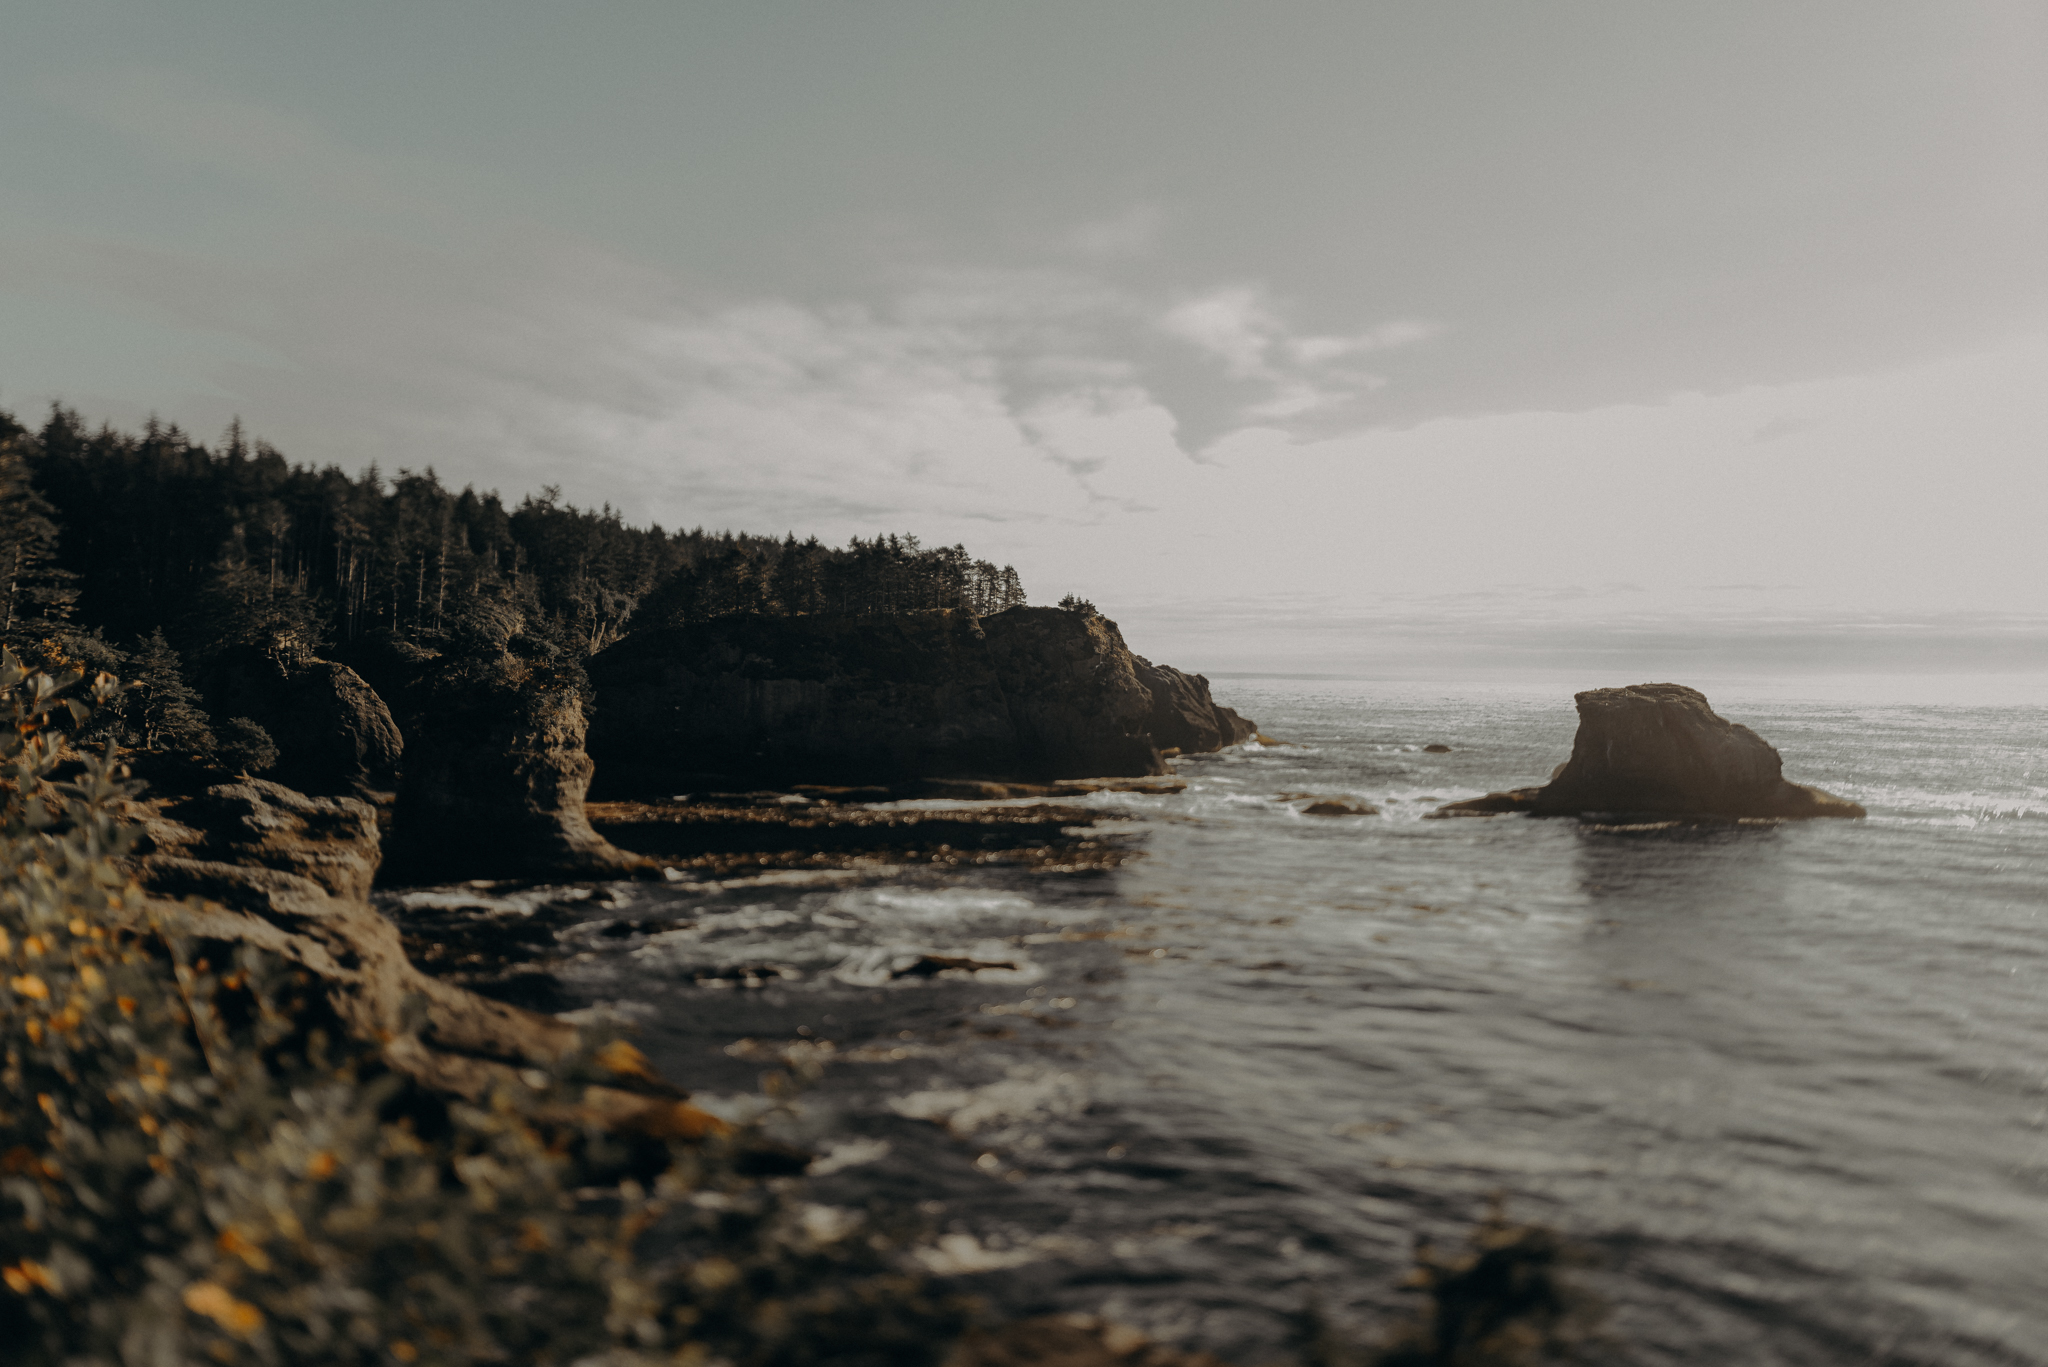 Isaiah + Taylor Photography - Cape Flattery Elopement, Olympia National Forest Wedding Photographer-038.jpg